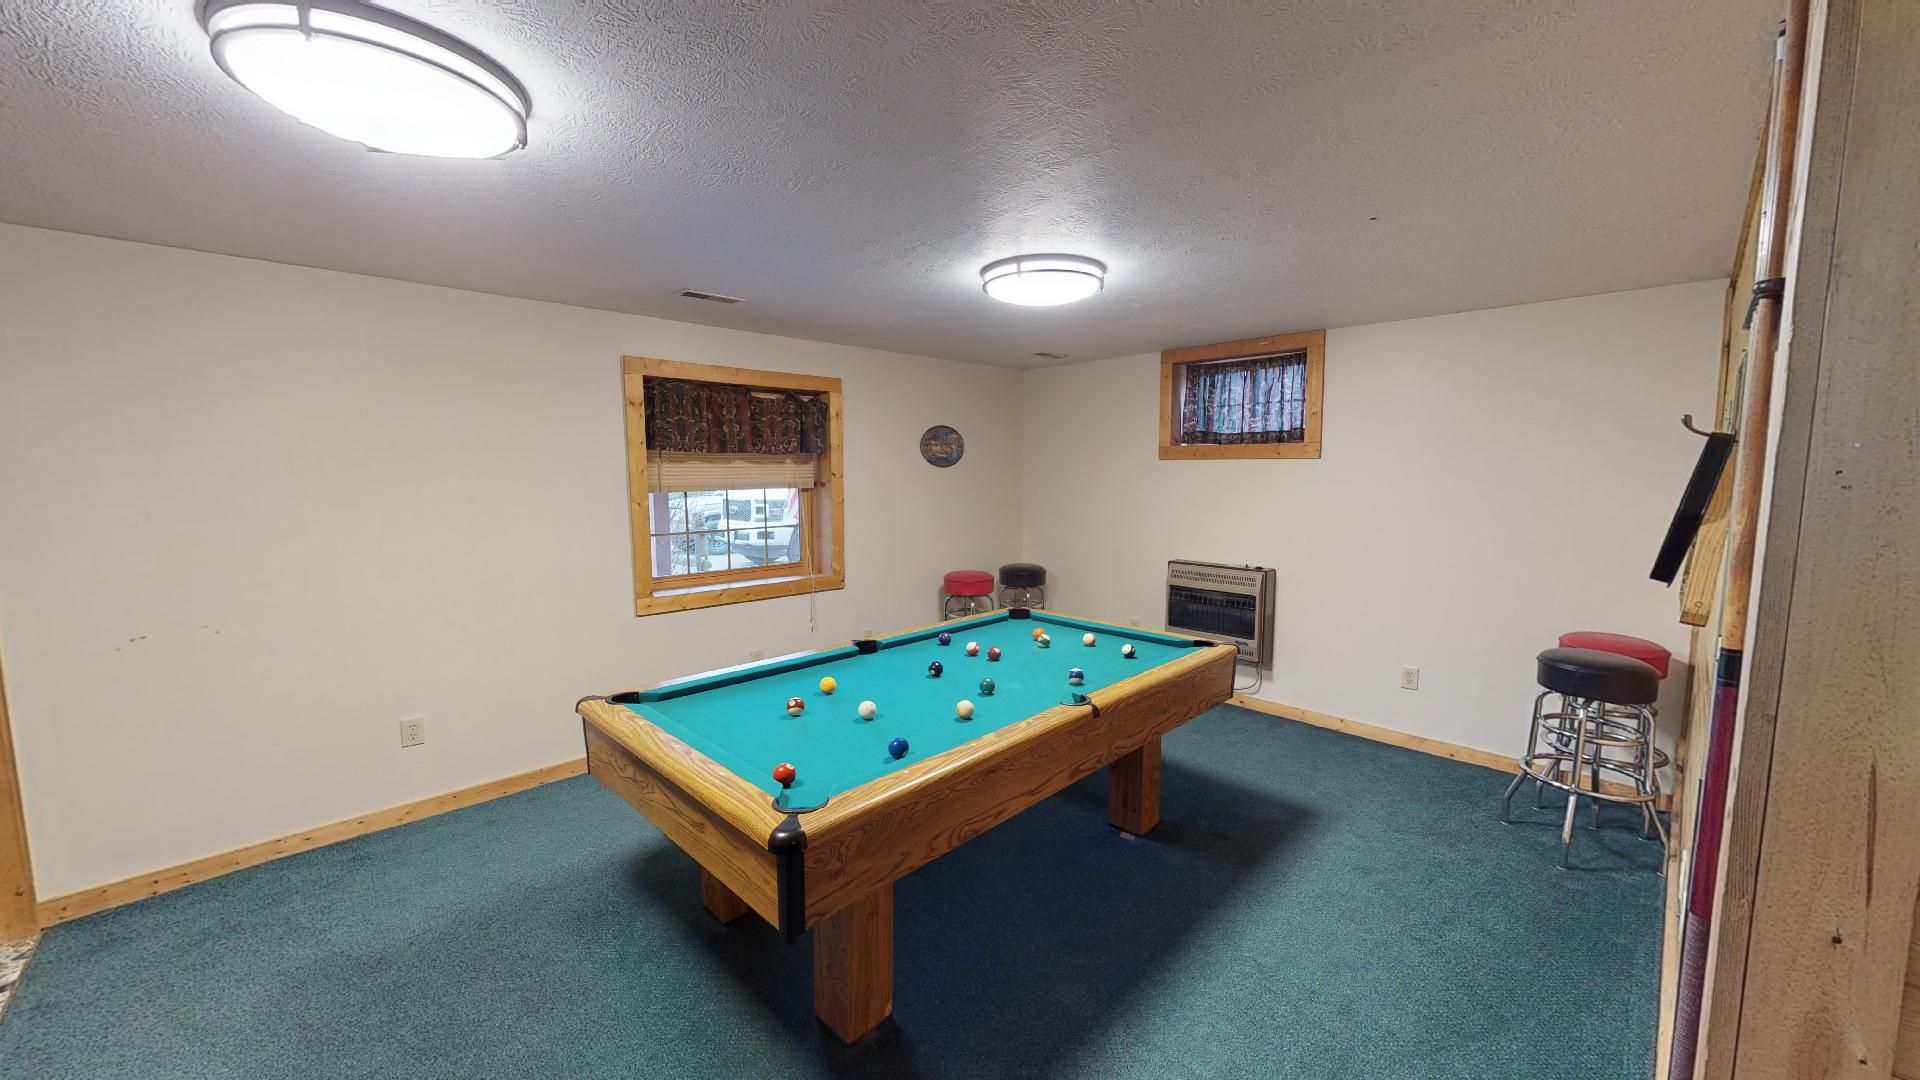 Sunrise Pool/Billiards - Enjoy a game of pool in the lower level of Sunrise.